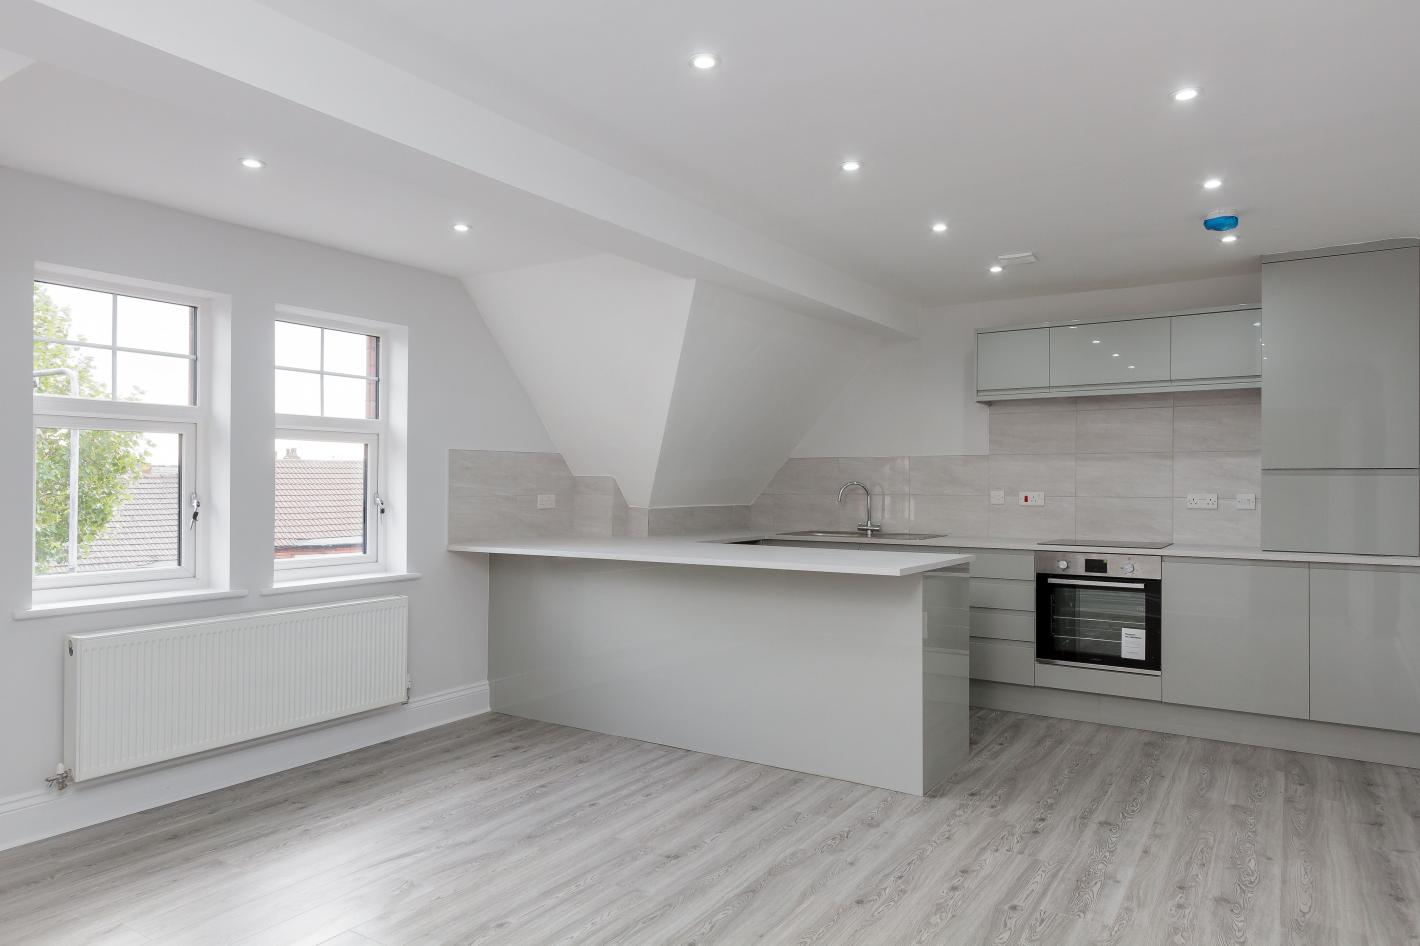 buy to let investment with modern style kitchen with white cabinets, white walls, grey laminate flooring, large breakfast bar in the middle of the room.